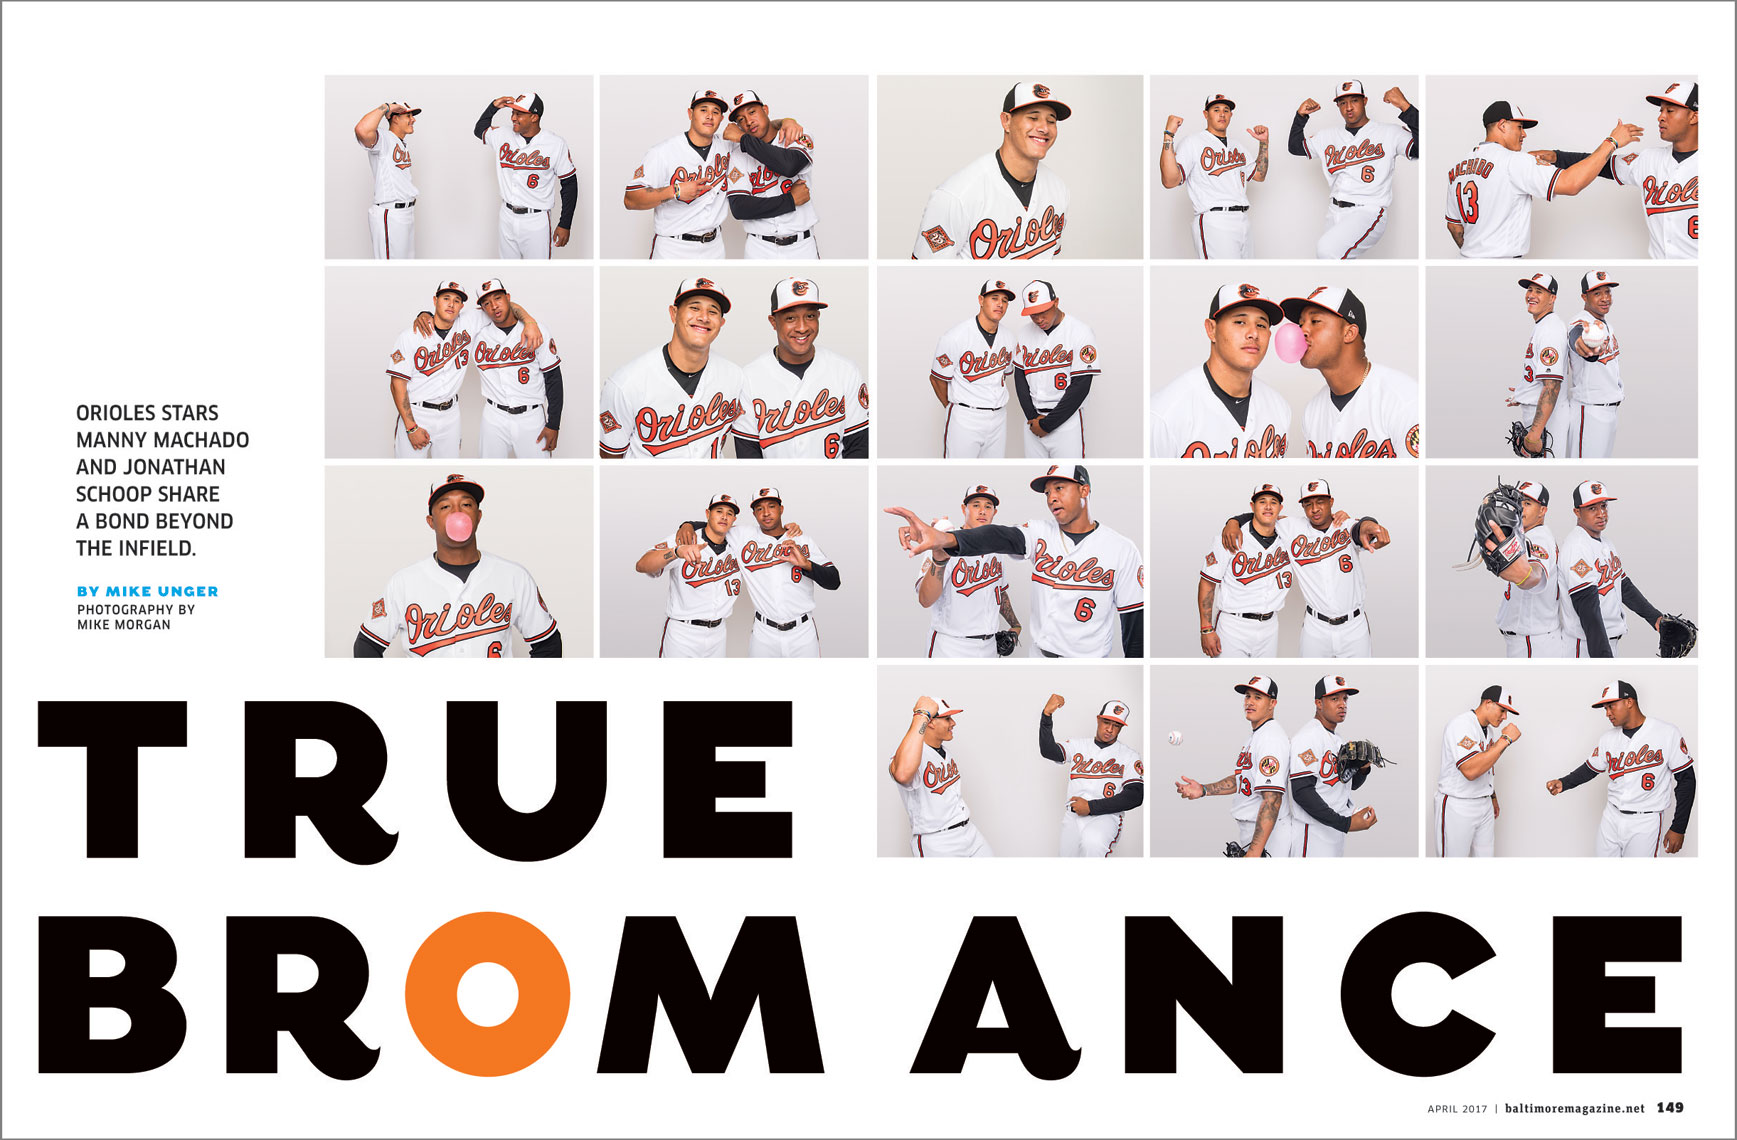 Baltimore Magazine spread featuring Baltimore Orioles Manny Machado and Jonathan Schoop